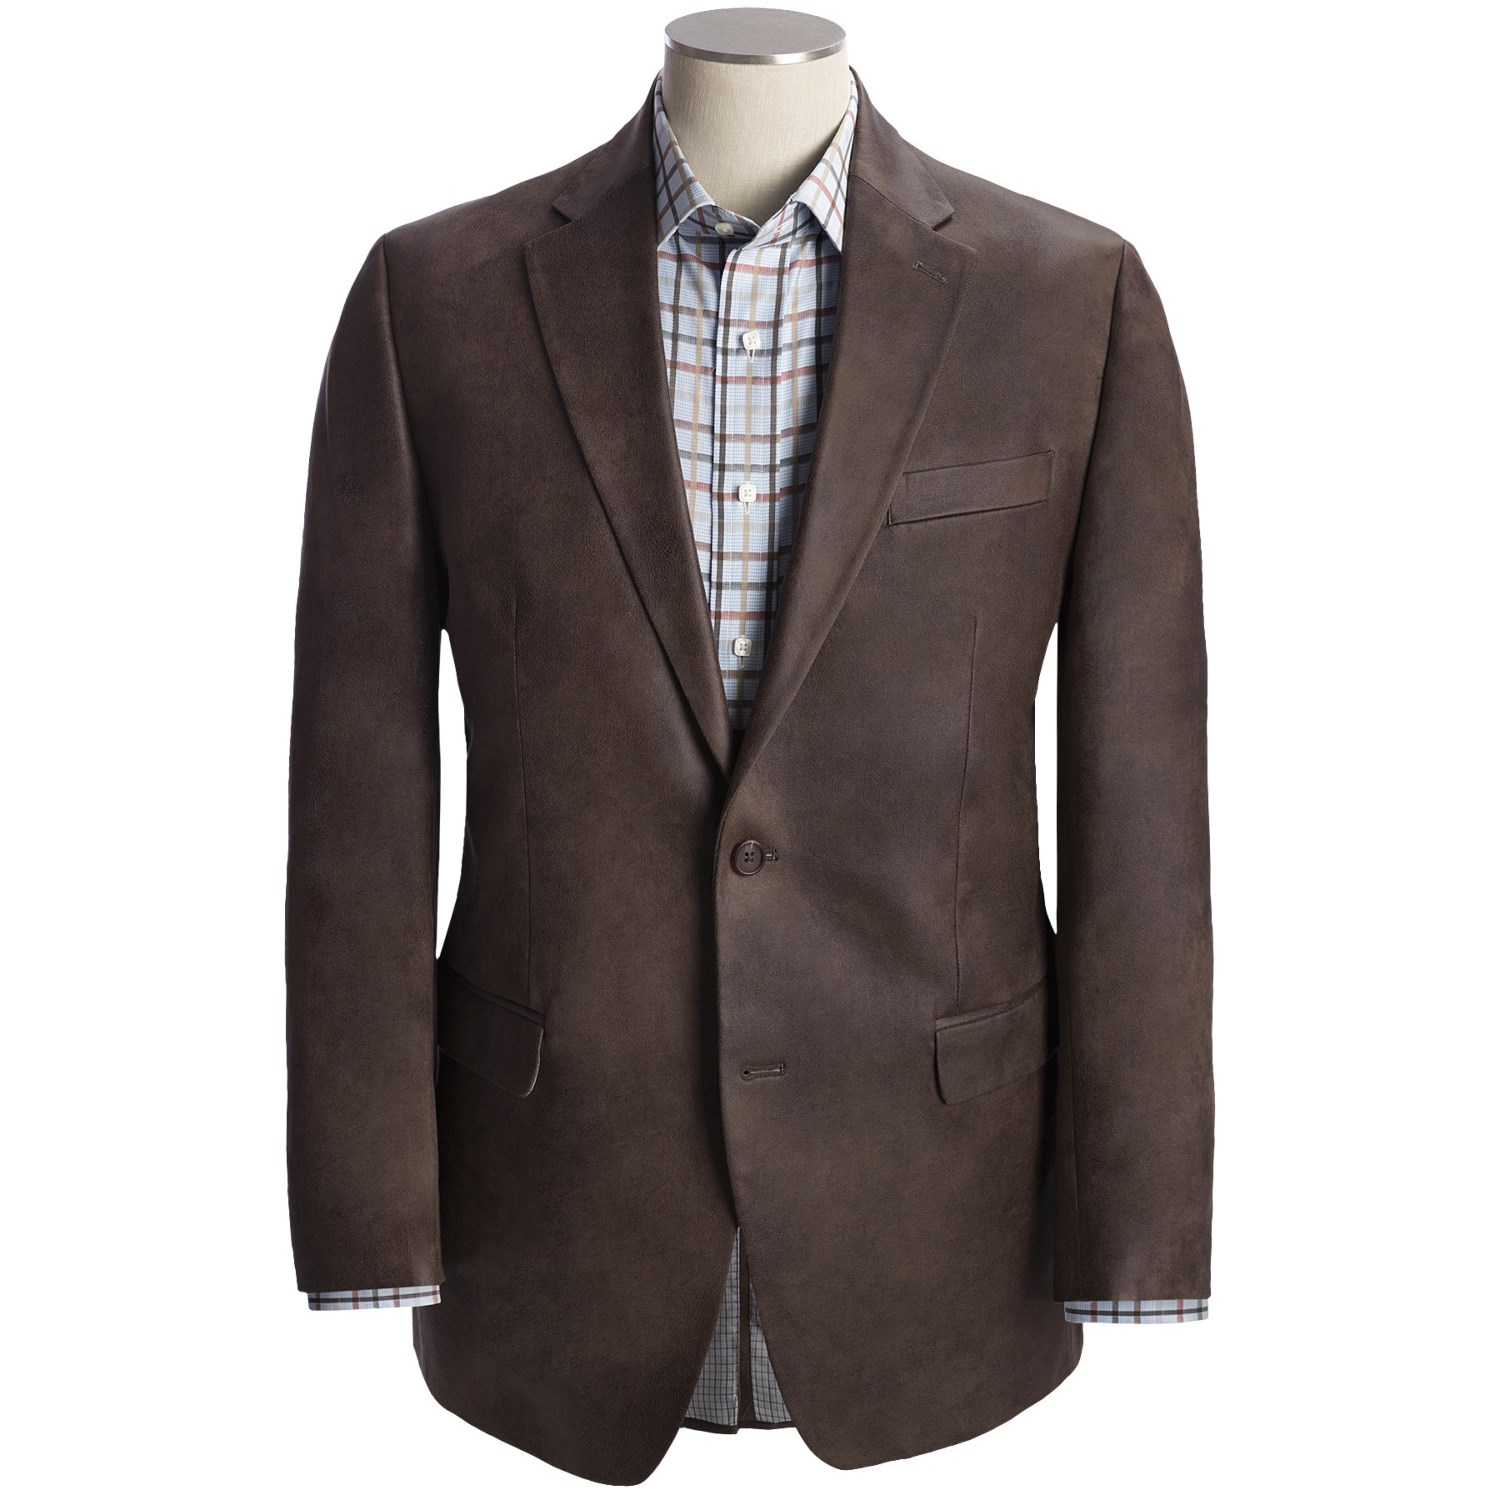 Free shipping on blazers and sport coats at thritingetqay.cf Shop the latest styles from the best brands of blazers for men. Totally free shipping and returns.